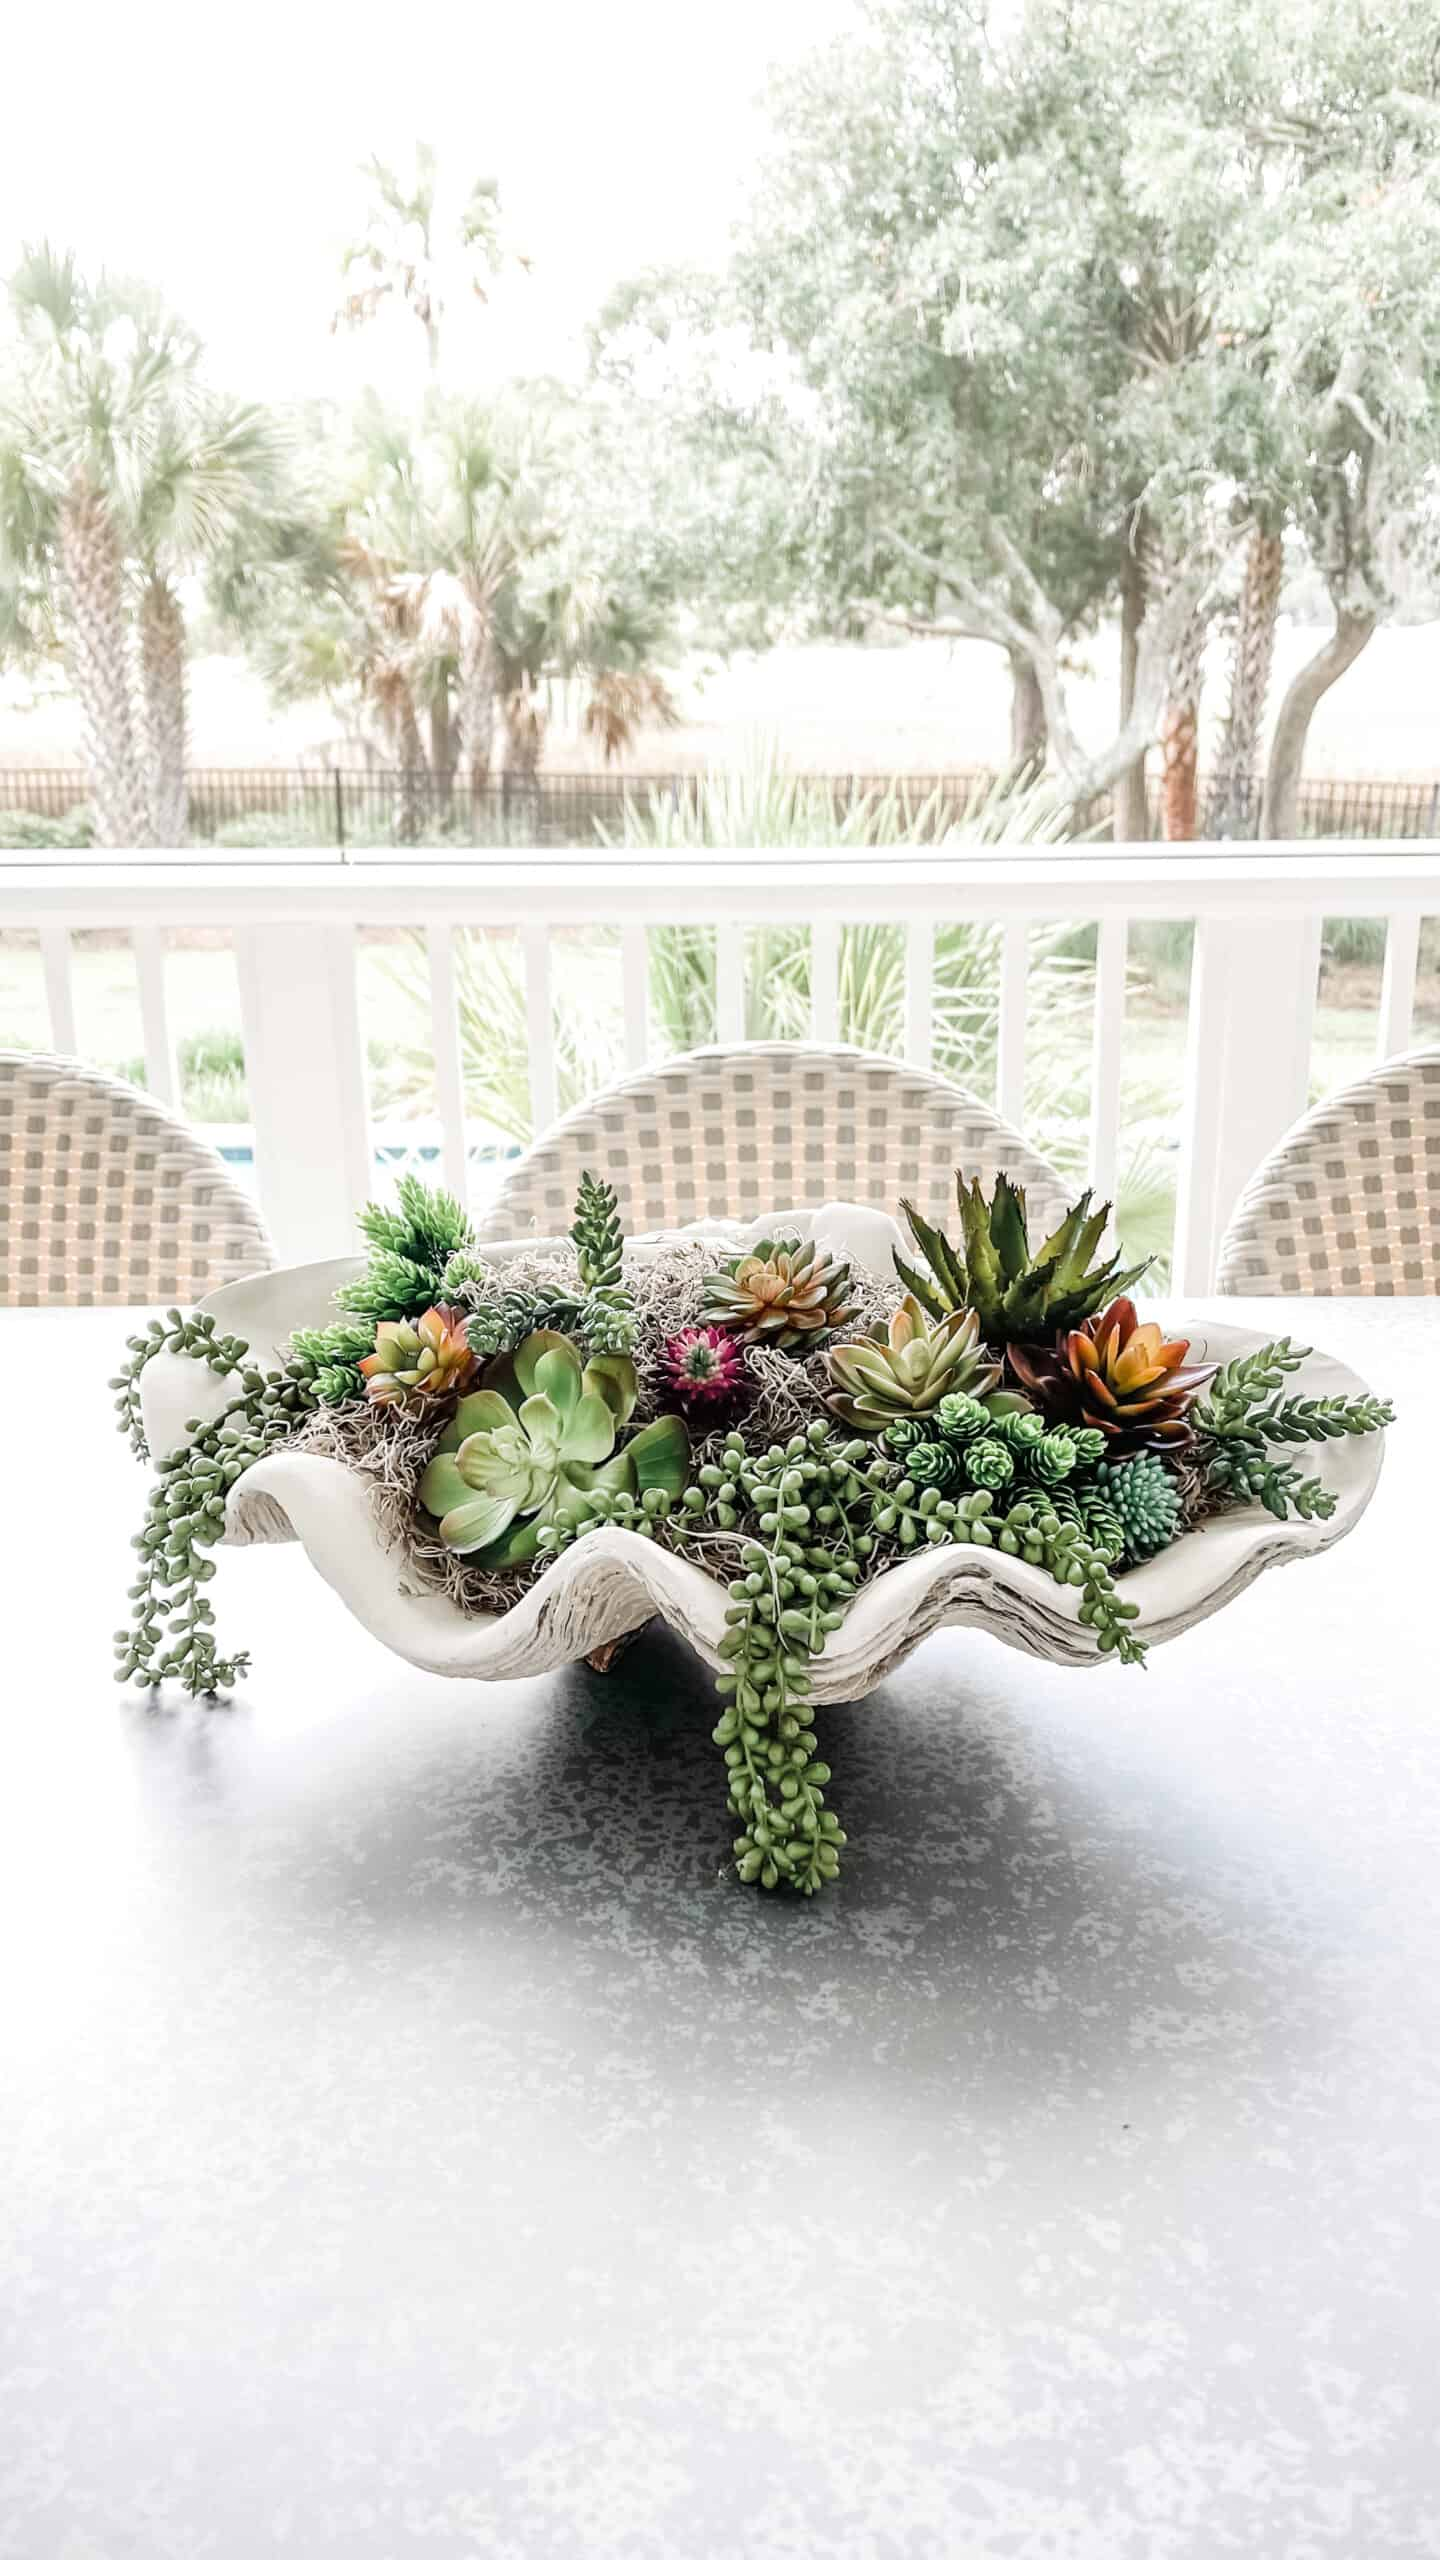 Clam shell filled with succulents as a table centerpiece.